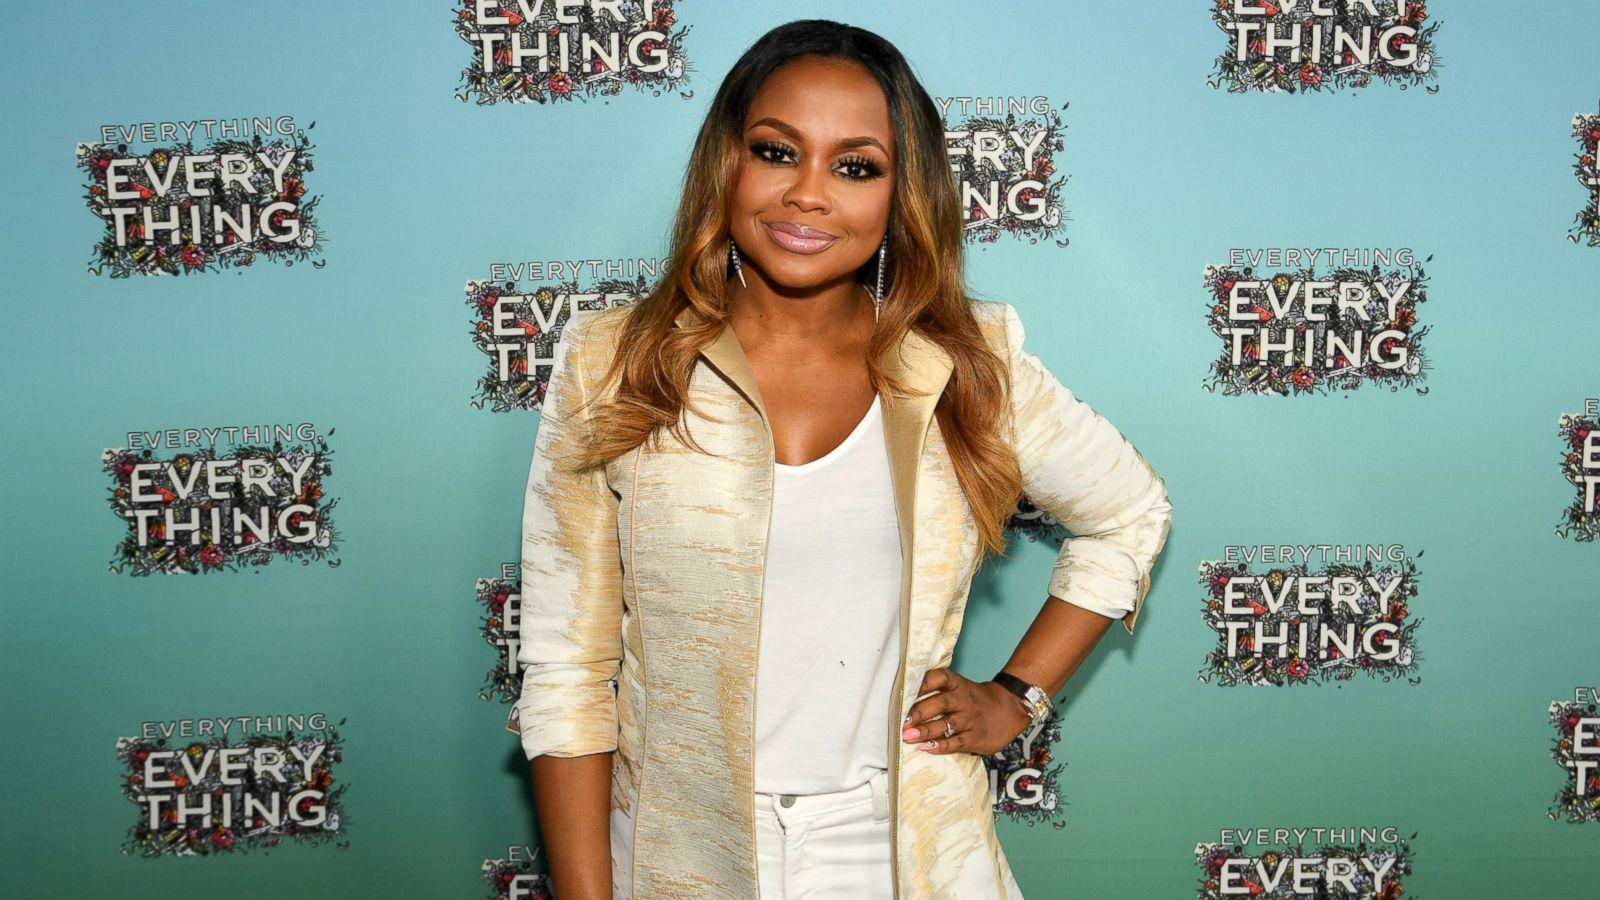 Phaedra Parks Looks Flawless In Her Latest Photo - See The Precious Advice She Gives Women